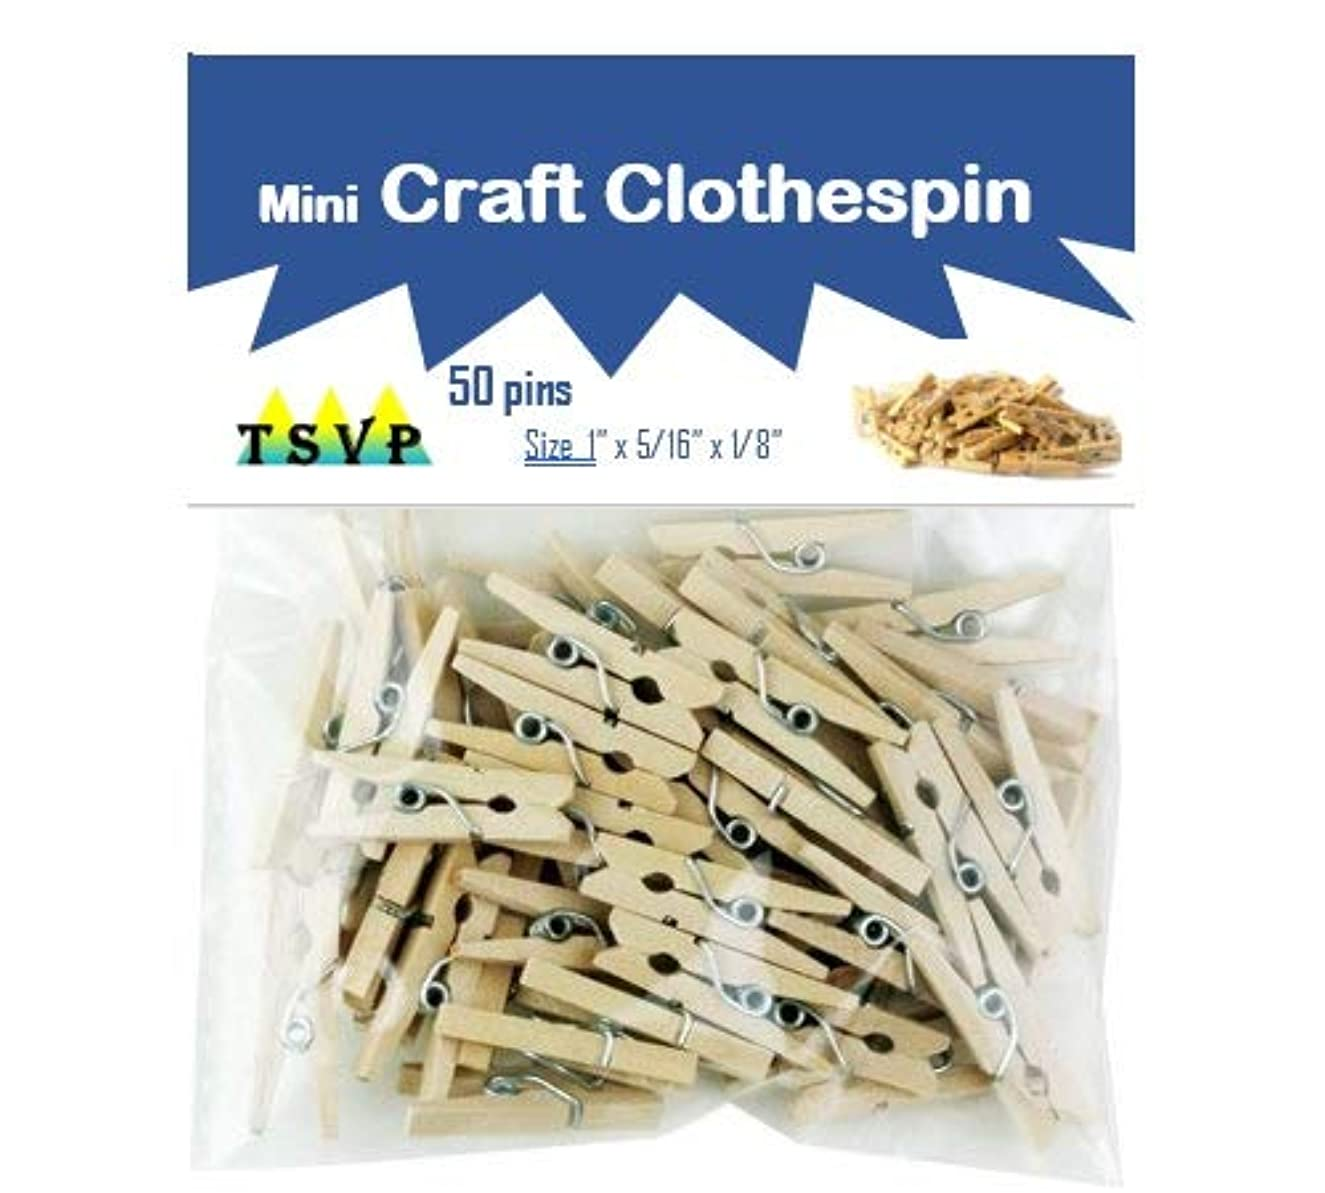 Mini Clothes Pins for Arts n Crafts  50 Clothespins per Pack, Natural Wood  Small Hanging Clips/Pegs/Hooks for DIY Projects, Vintage Instant-Print Picture/Photograph Wall Hanging & More